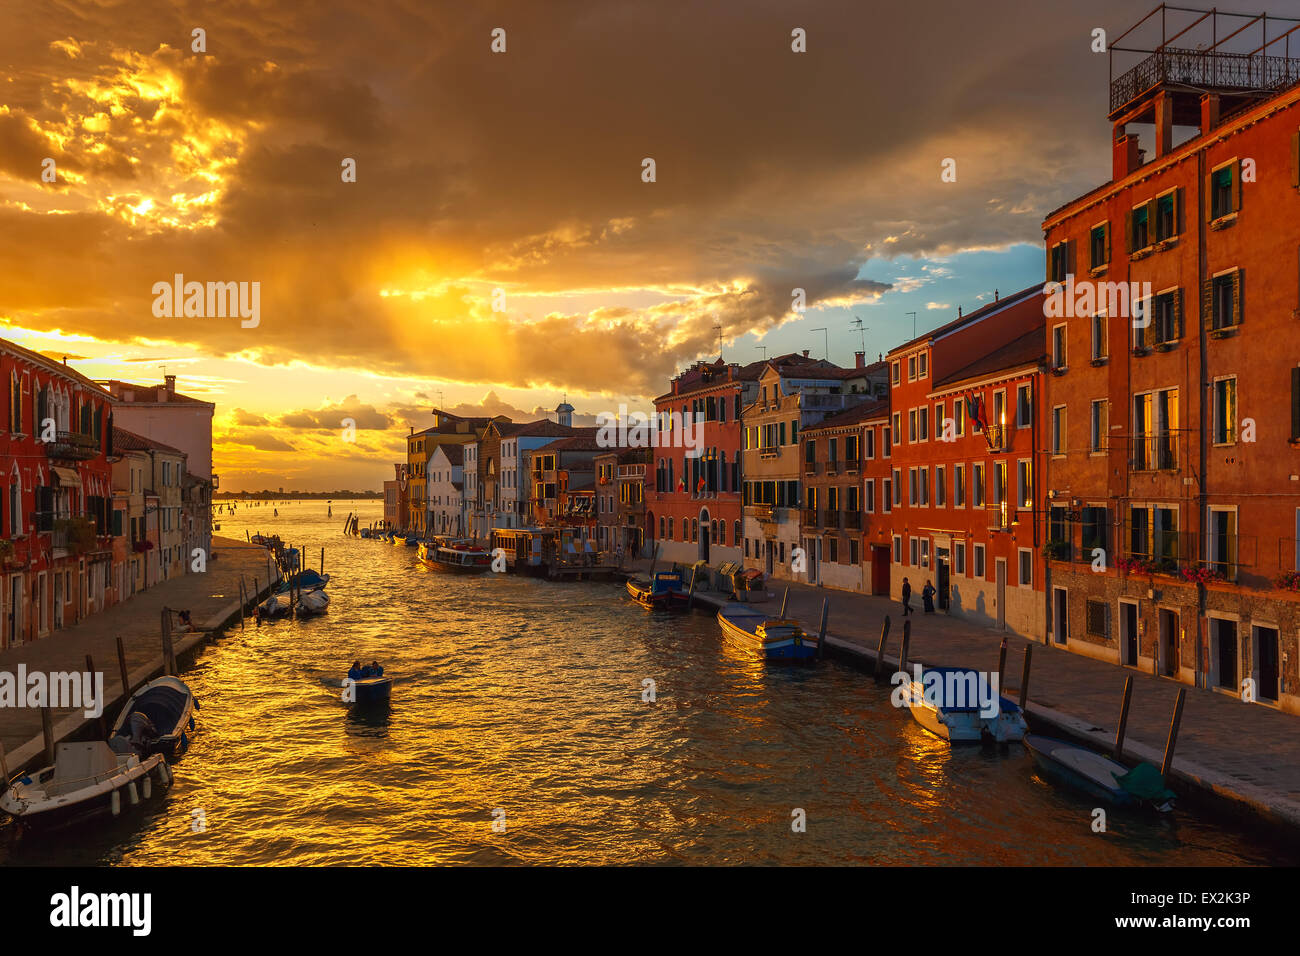 Sunset on canal Cannaregio in Venice, Italy Stock Photo